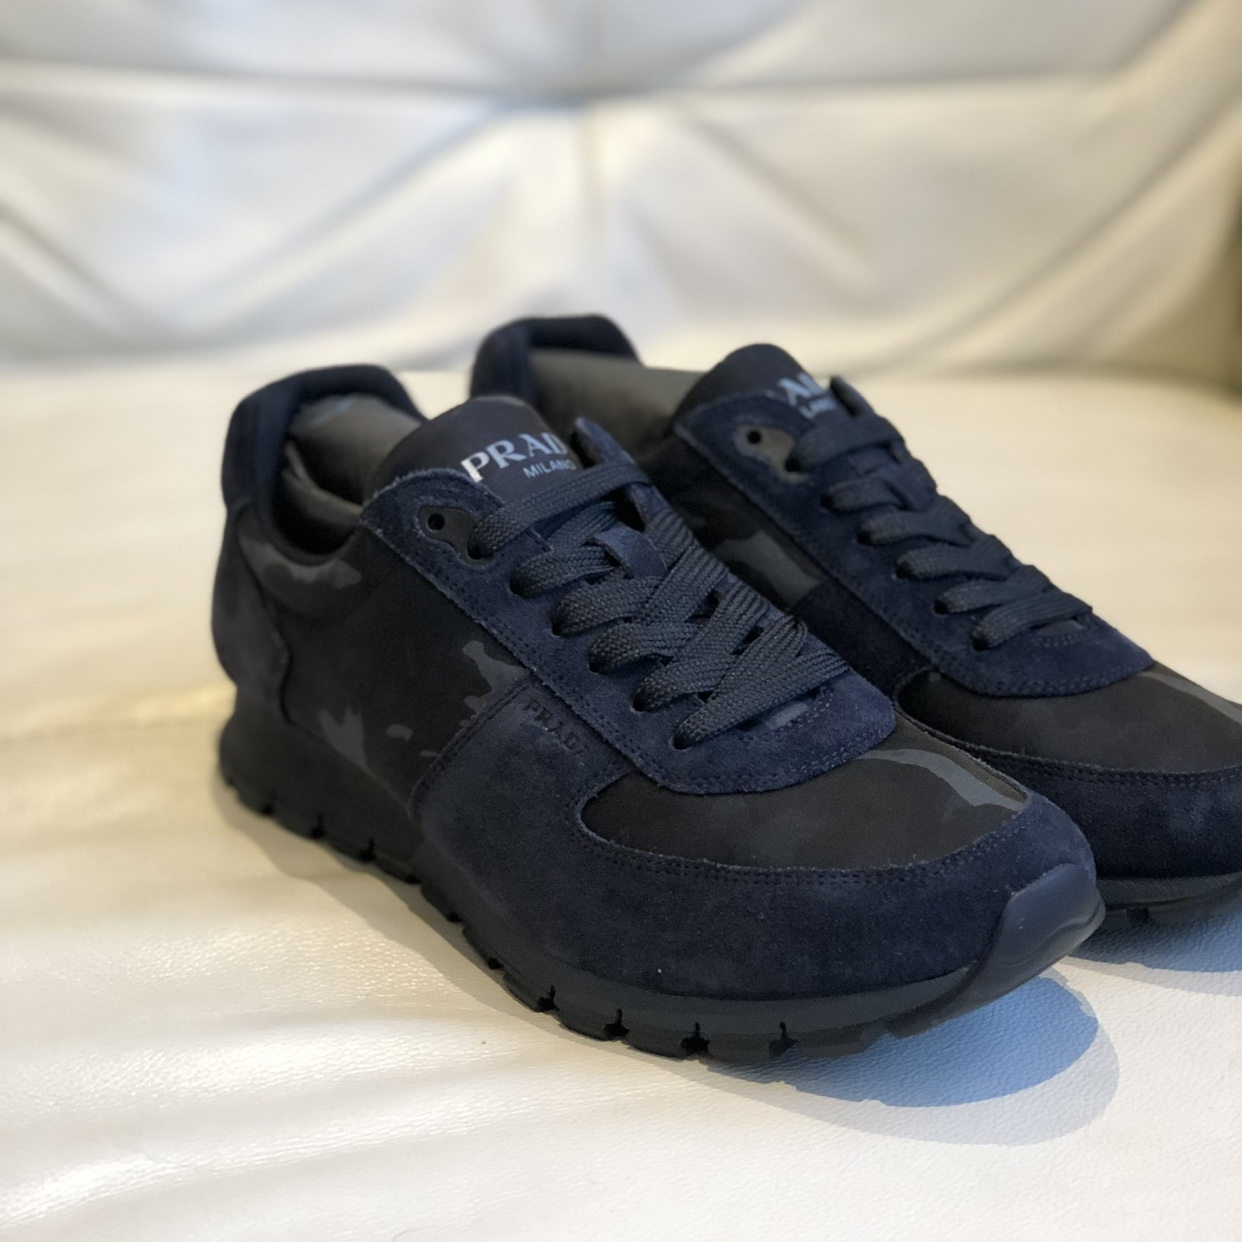 buy sale for whole family luxuriant in design Blue/ navy camo prada Milano runners. Brand new with ...